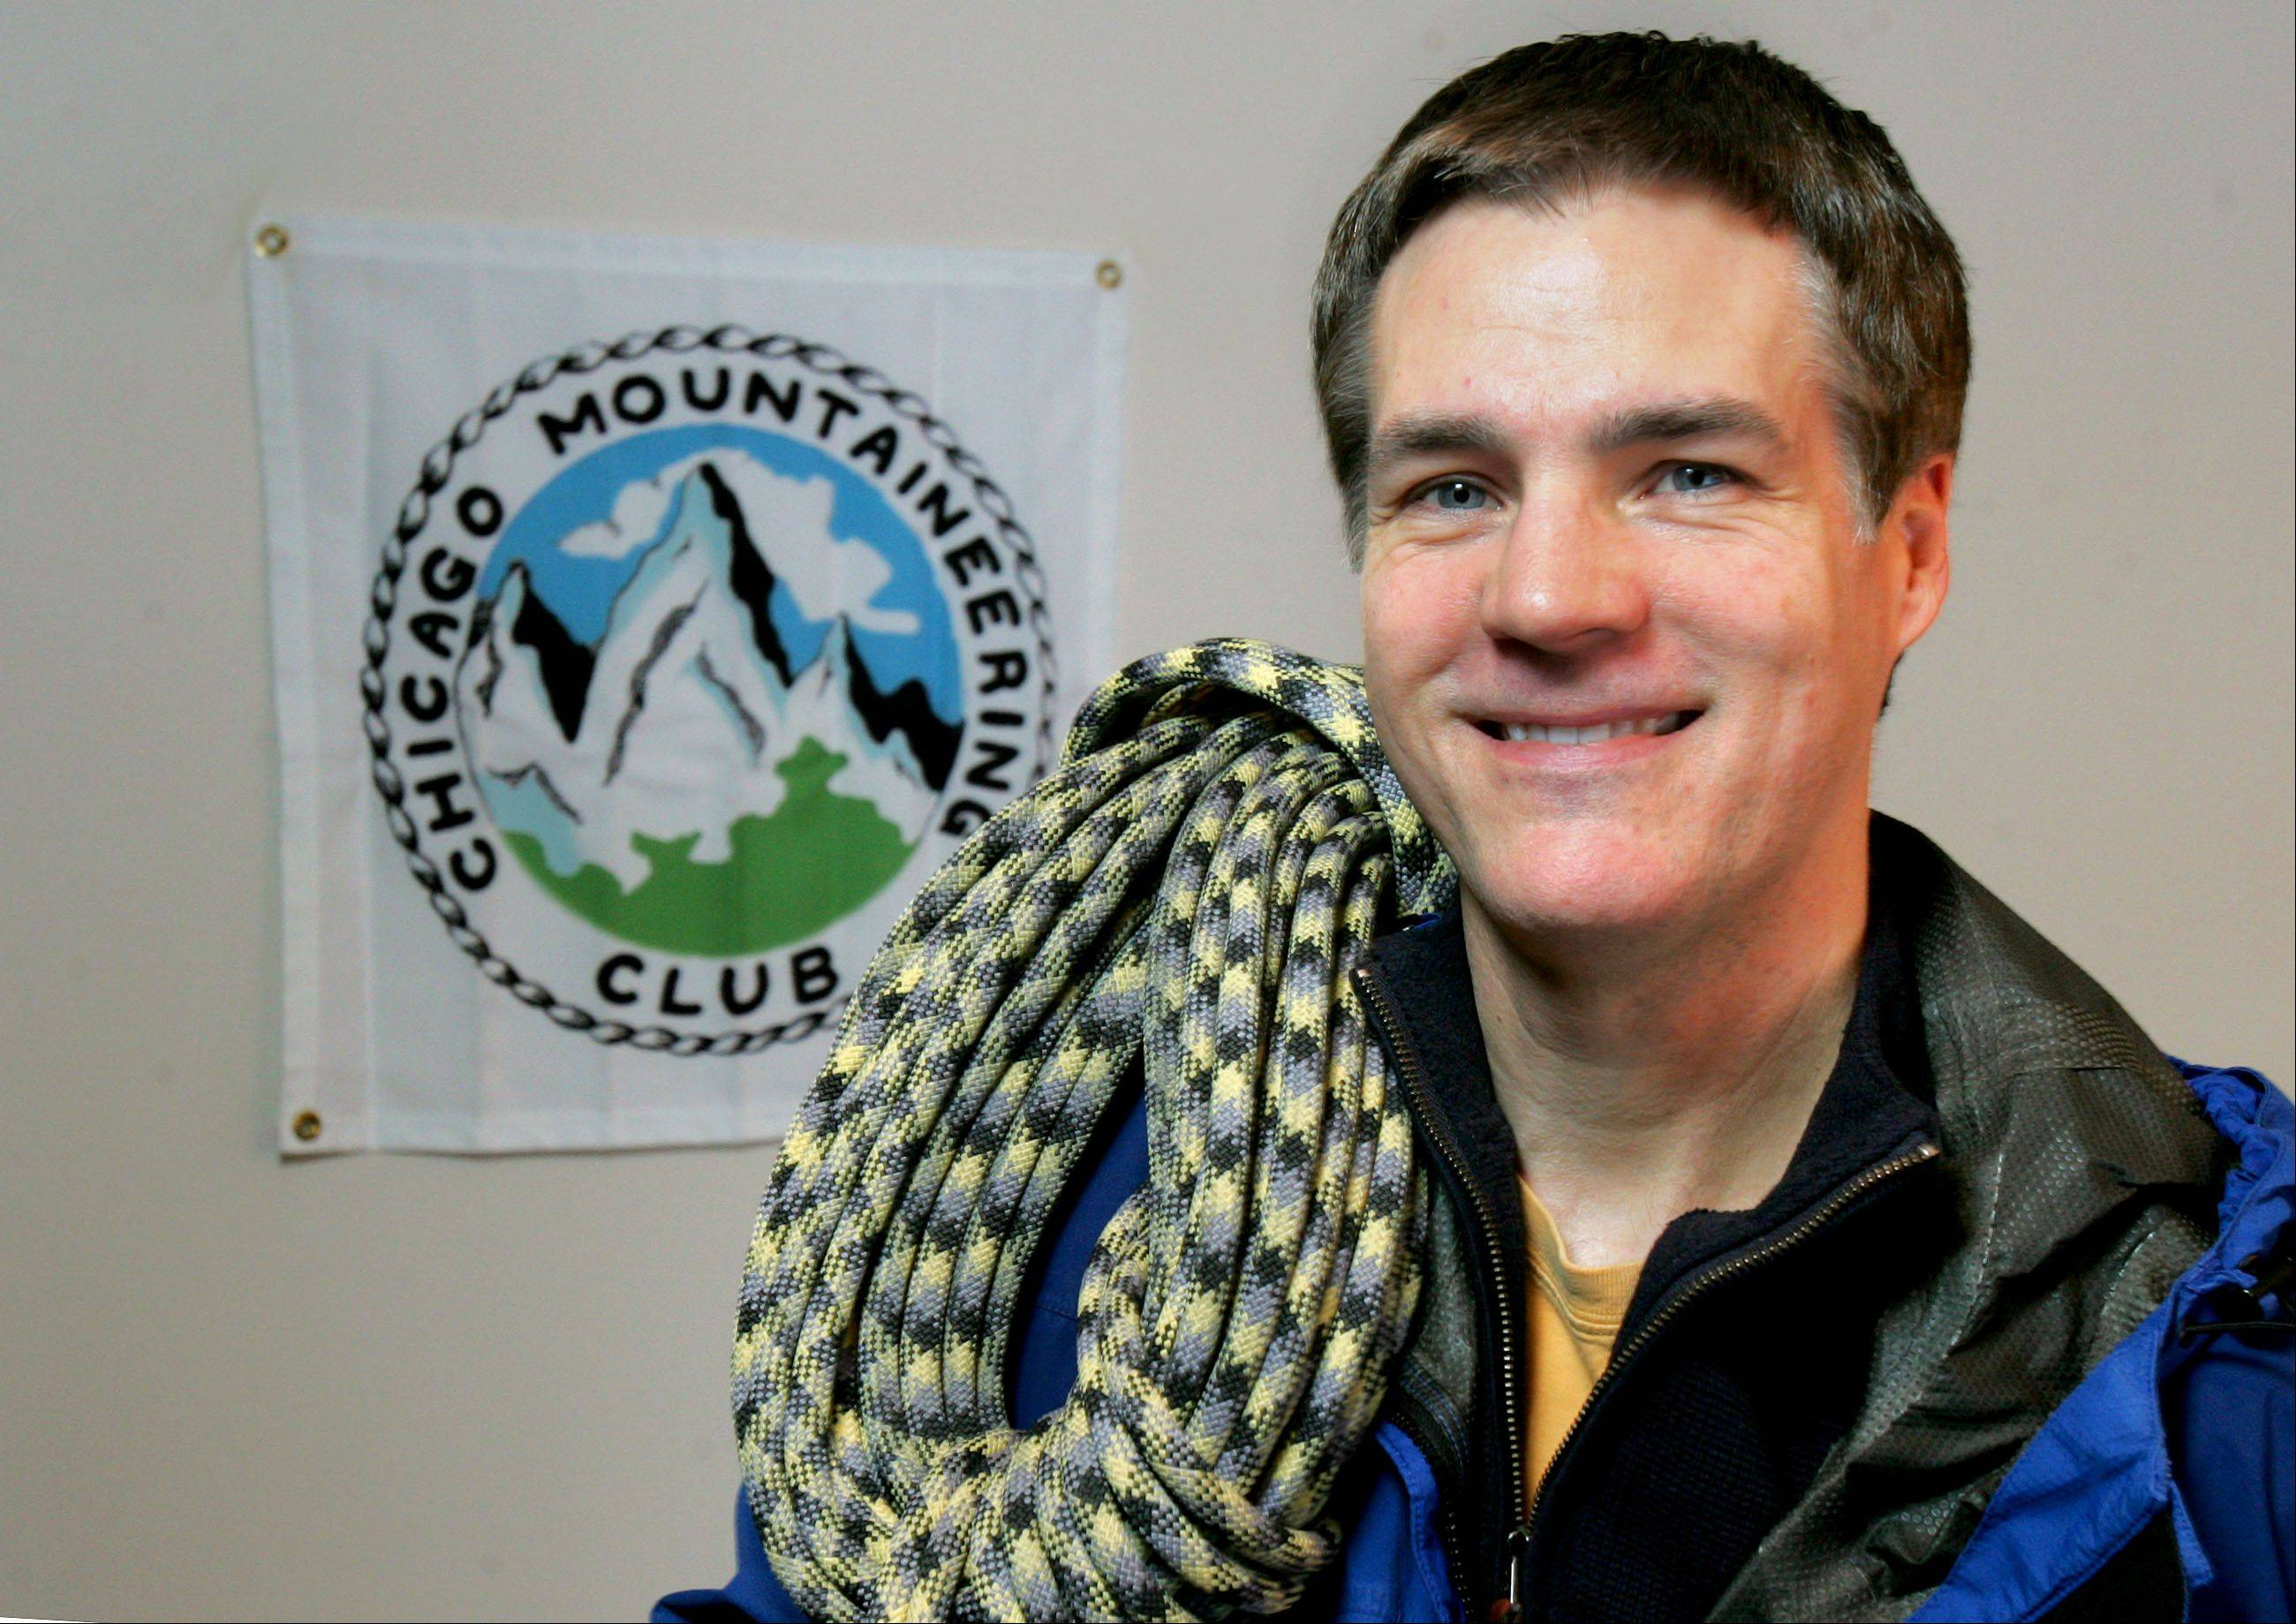 George Naxera of Kildeer has climbed the highest peaks in 49 states and will attempt number 50 in Hawaii this month.